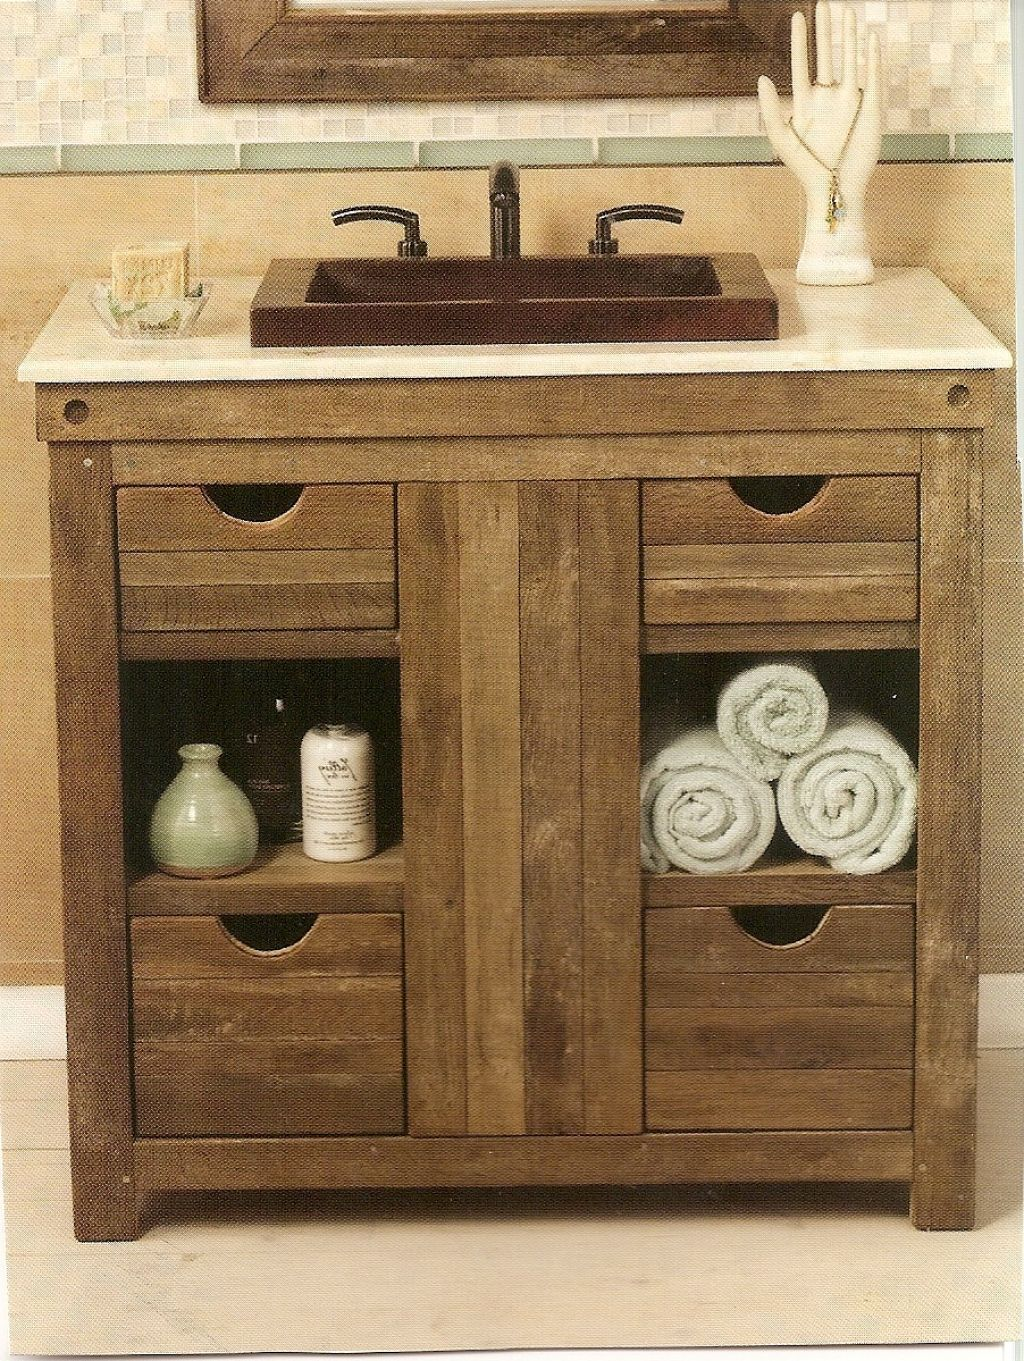 Rustic Bathroom Vanities To Make Your Bathroom Look Gorgeous - Bathroom sinks and vanities for small spaces